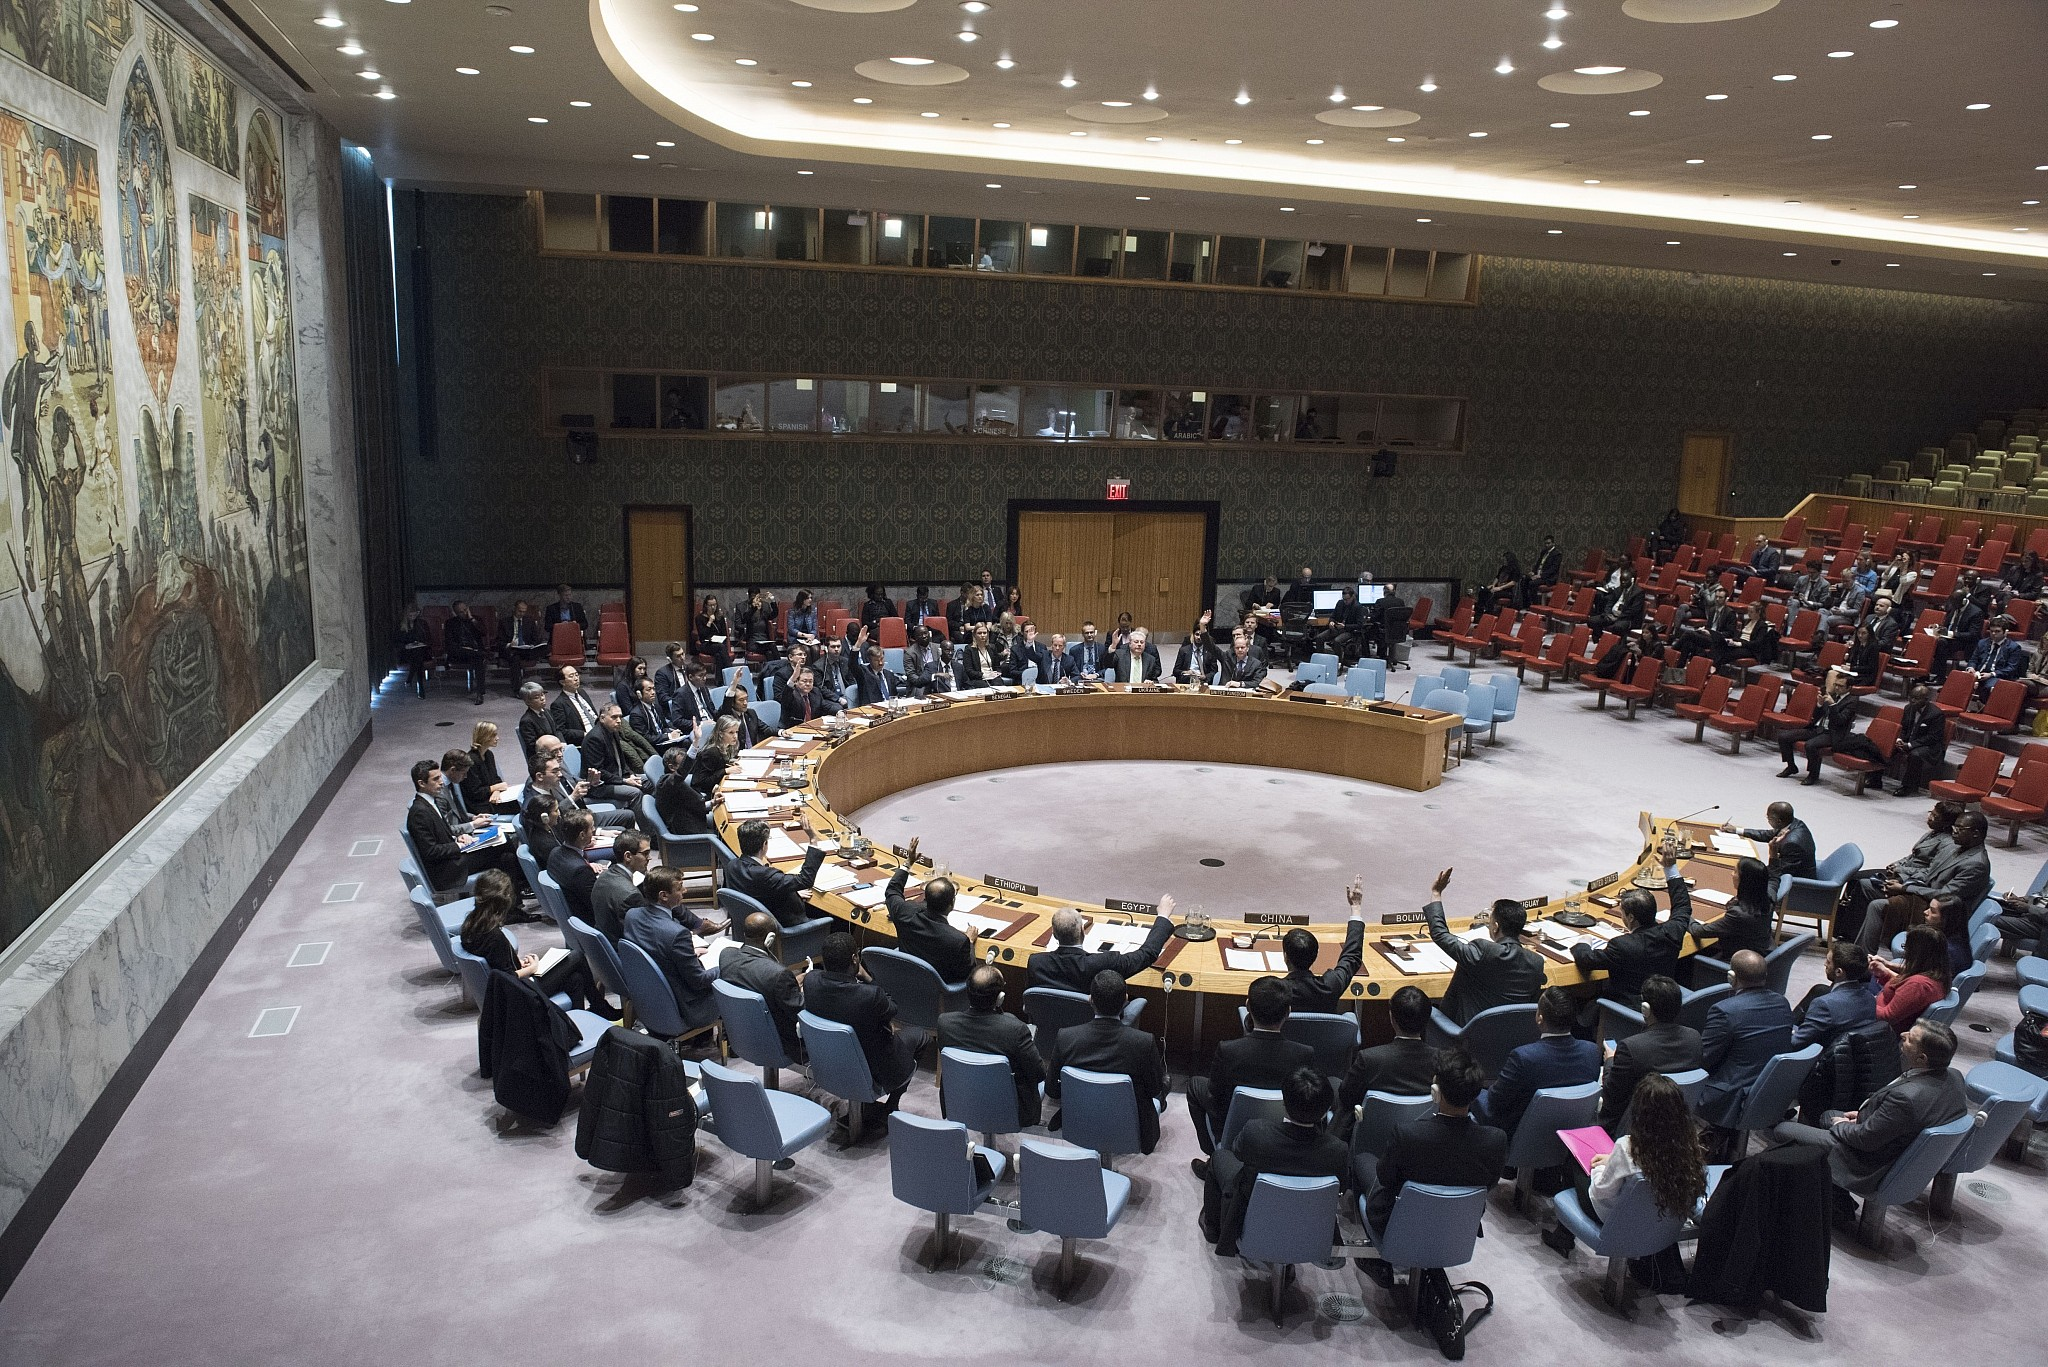 Russian Federation casts 10th United Nations veto on Syria action, blocking inquiry renewal